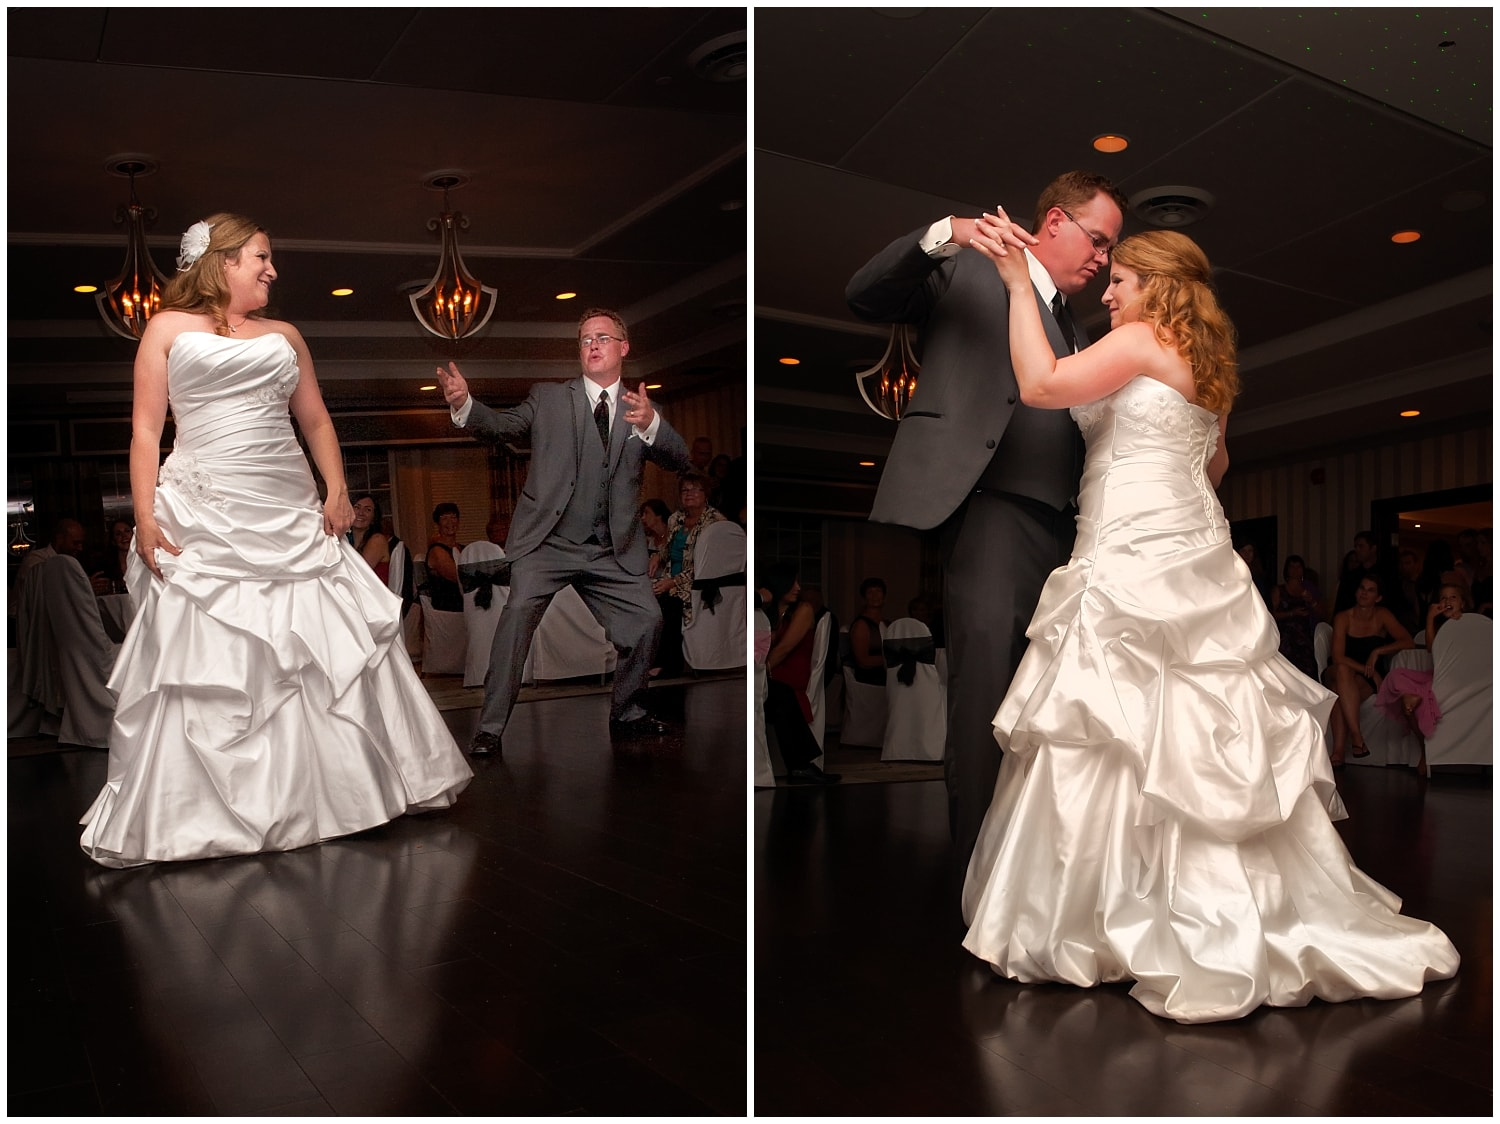 The bride and groom dance together during their wedding reception at the Ashburn Golf Club in Halifax NS.